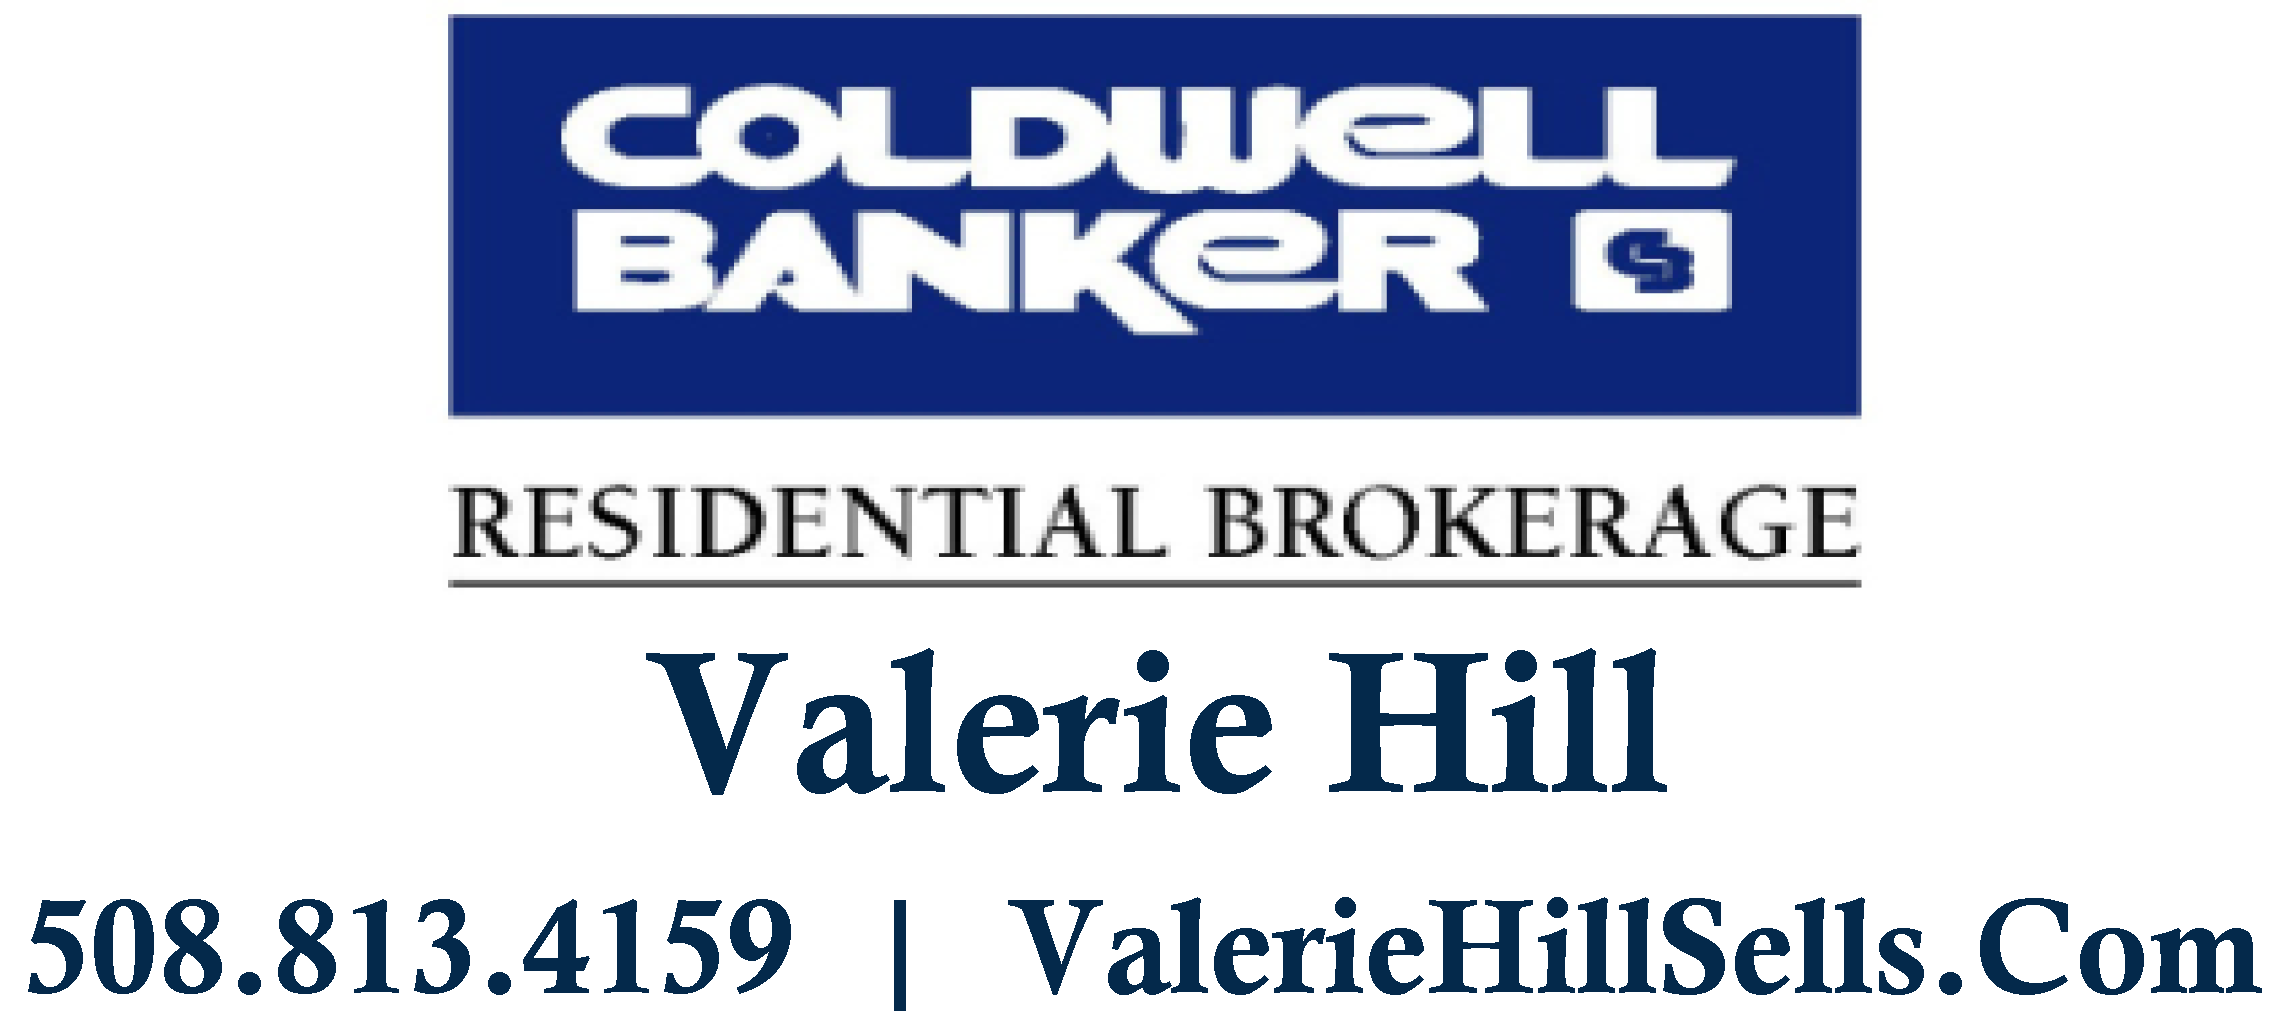 Coldwell Banker Valerie Hill